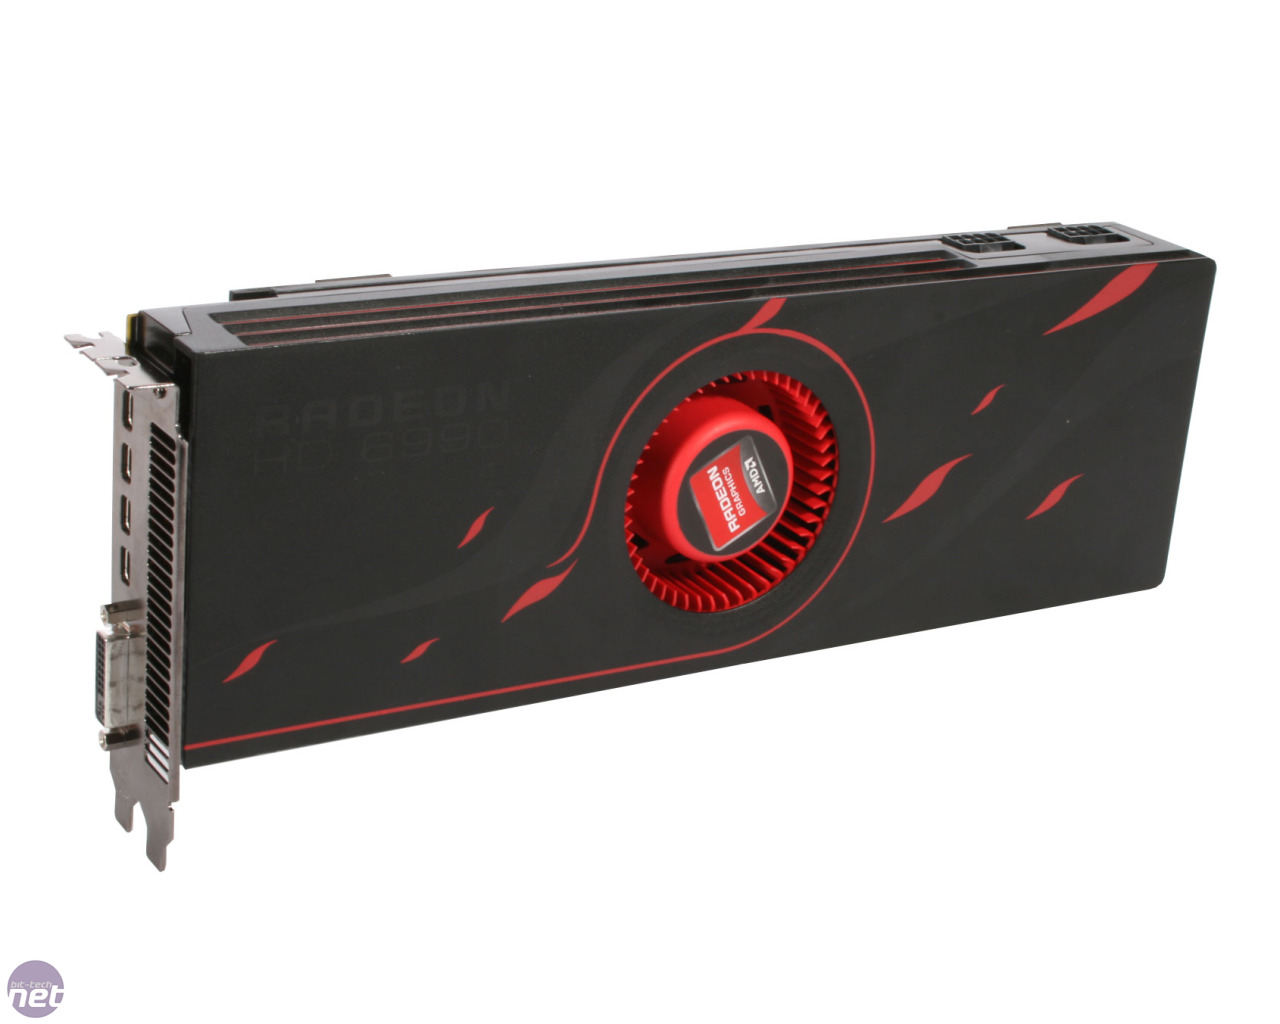 AMD Radeon HD 6990 4GB Review